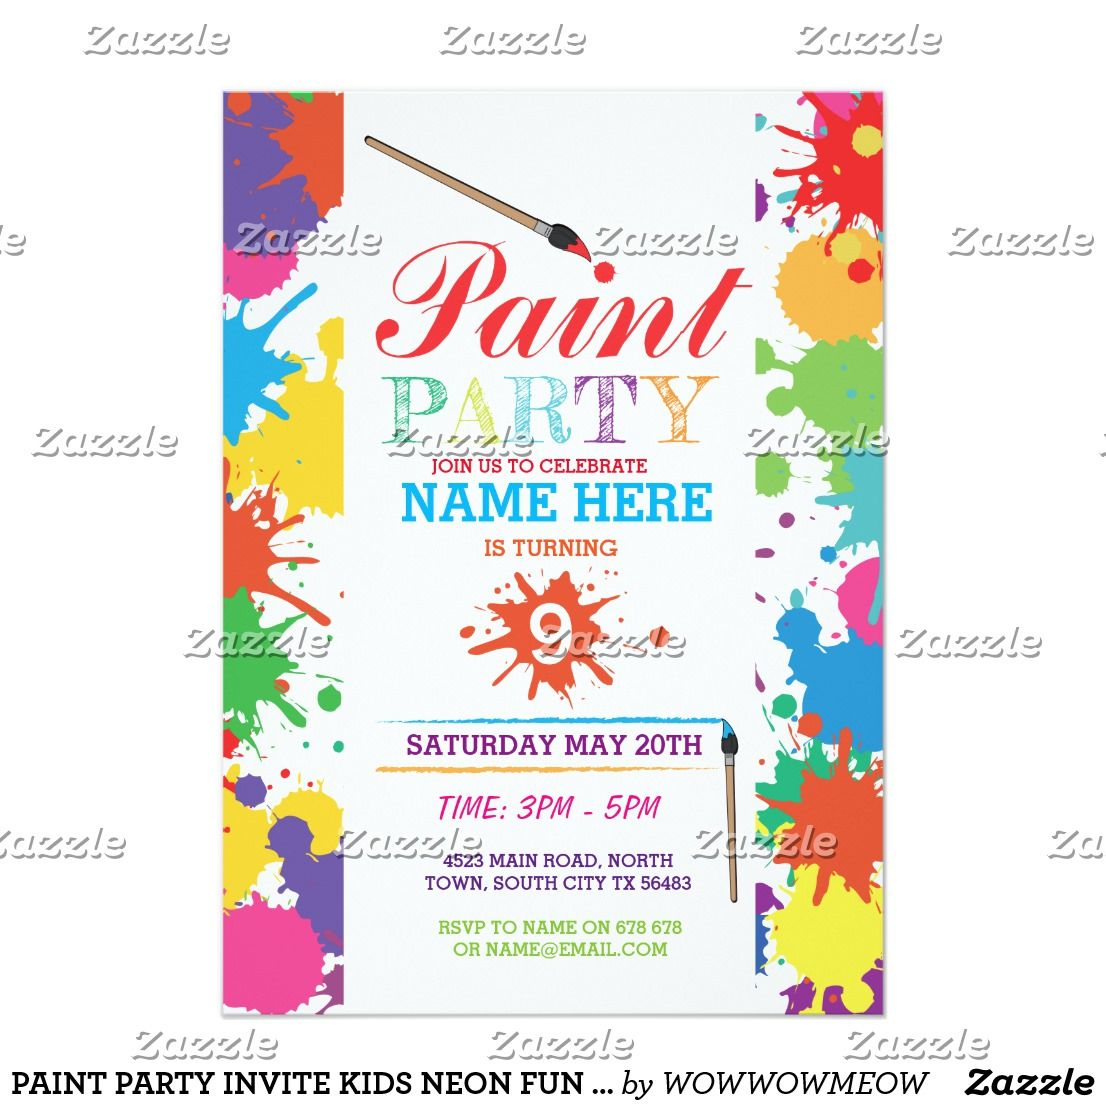 Paint party invite kids neon fun art ink birthday | Mom and Kids ...